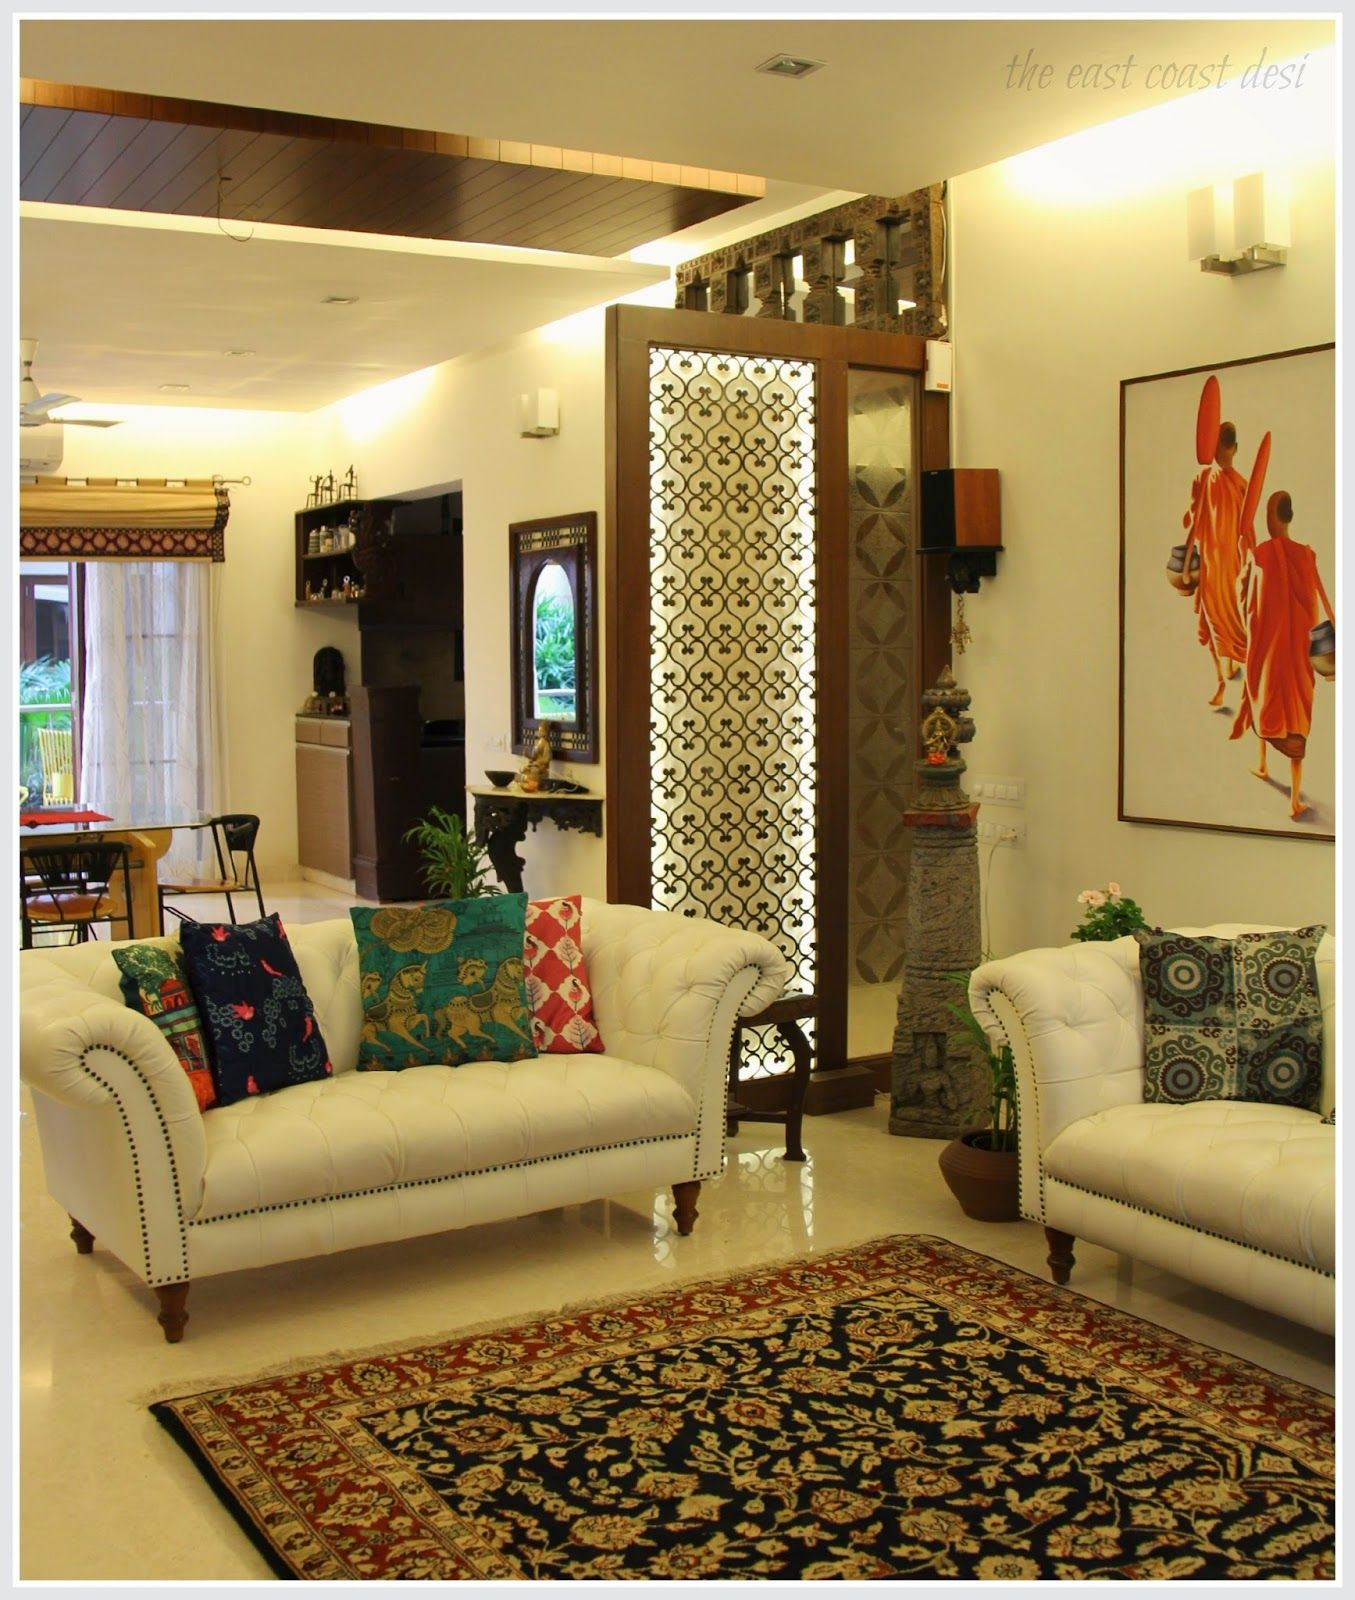 Desi home decor blogs